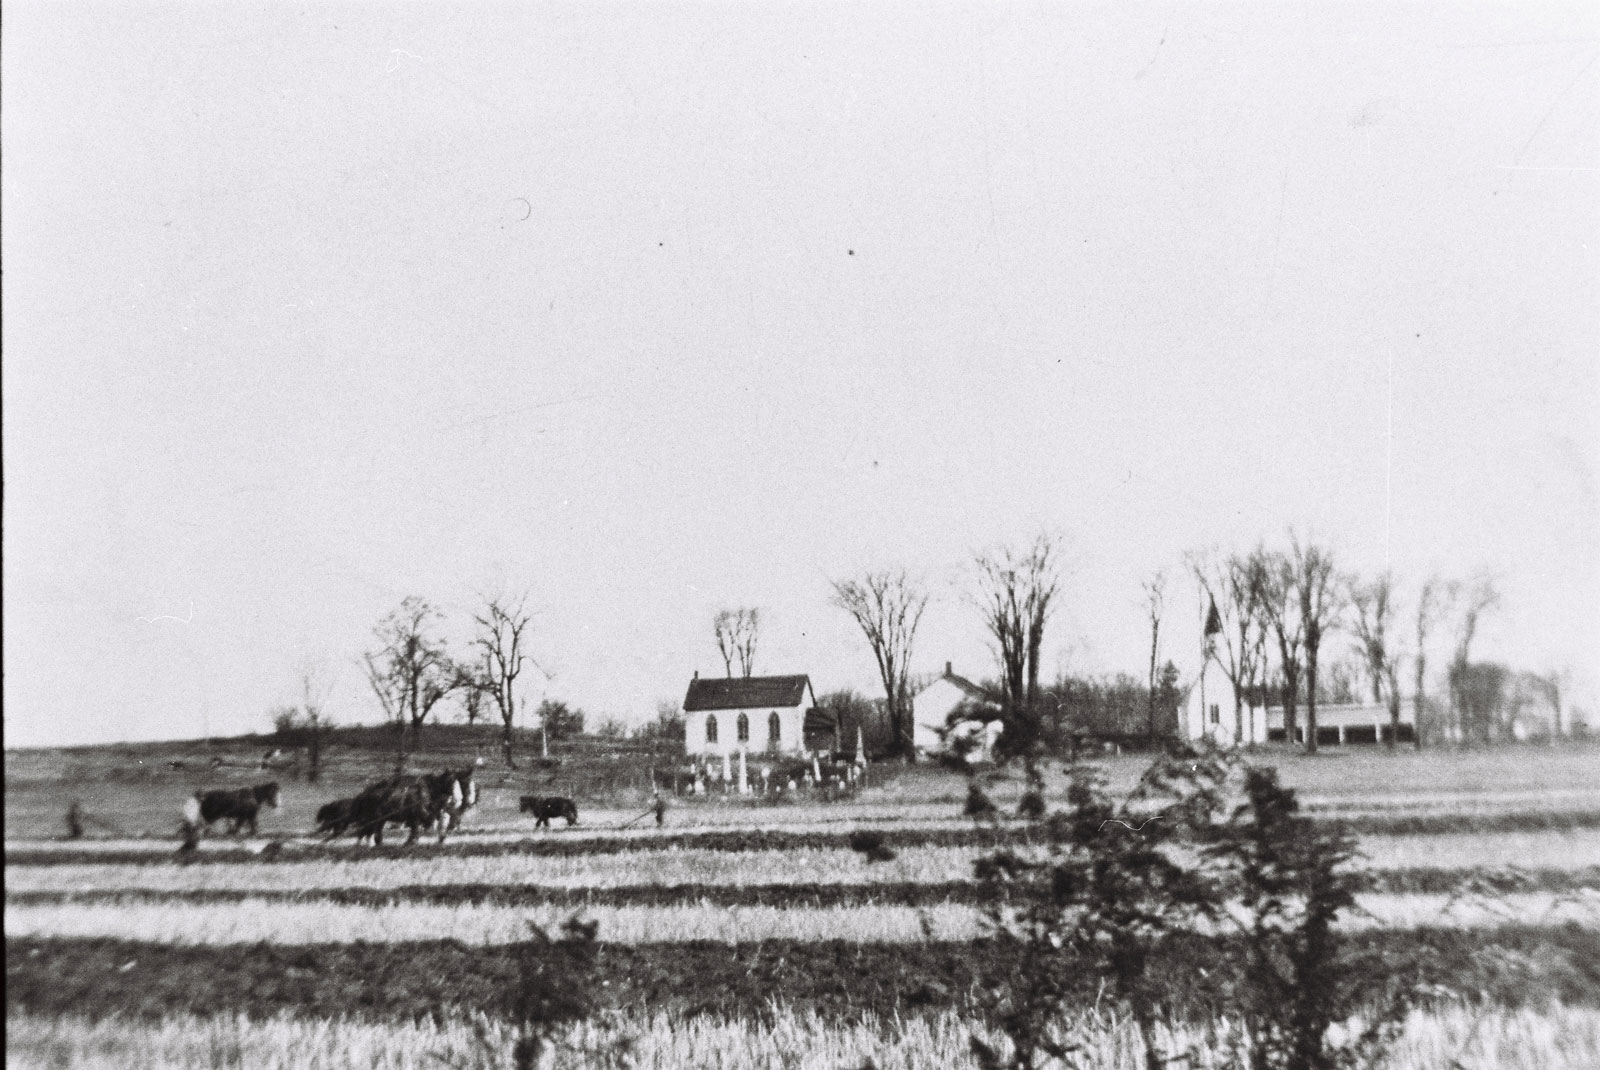 Looking towards St. Paul's Church, from a vantage point where the Kanata Rec Centre is now located on Terry Fox. The house on the hill is the Young farm. The original community churches are also visible, along with the Masonic Hall. The first church, cemetery, and Masonic Hall are still there. Photo from the collection of Roger Young.